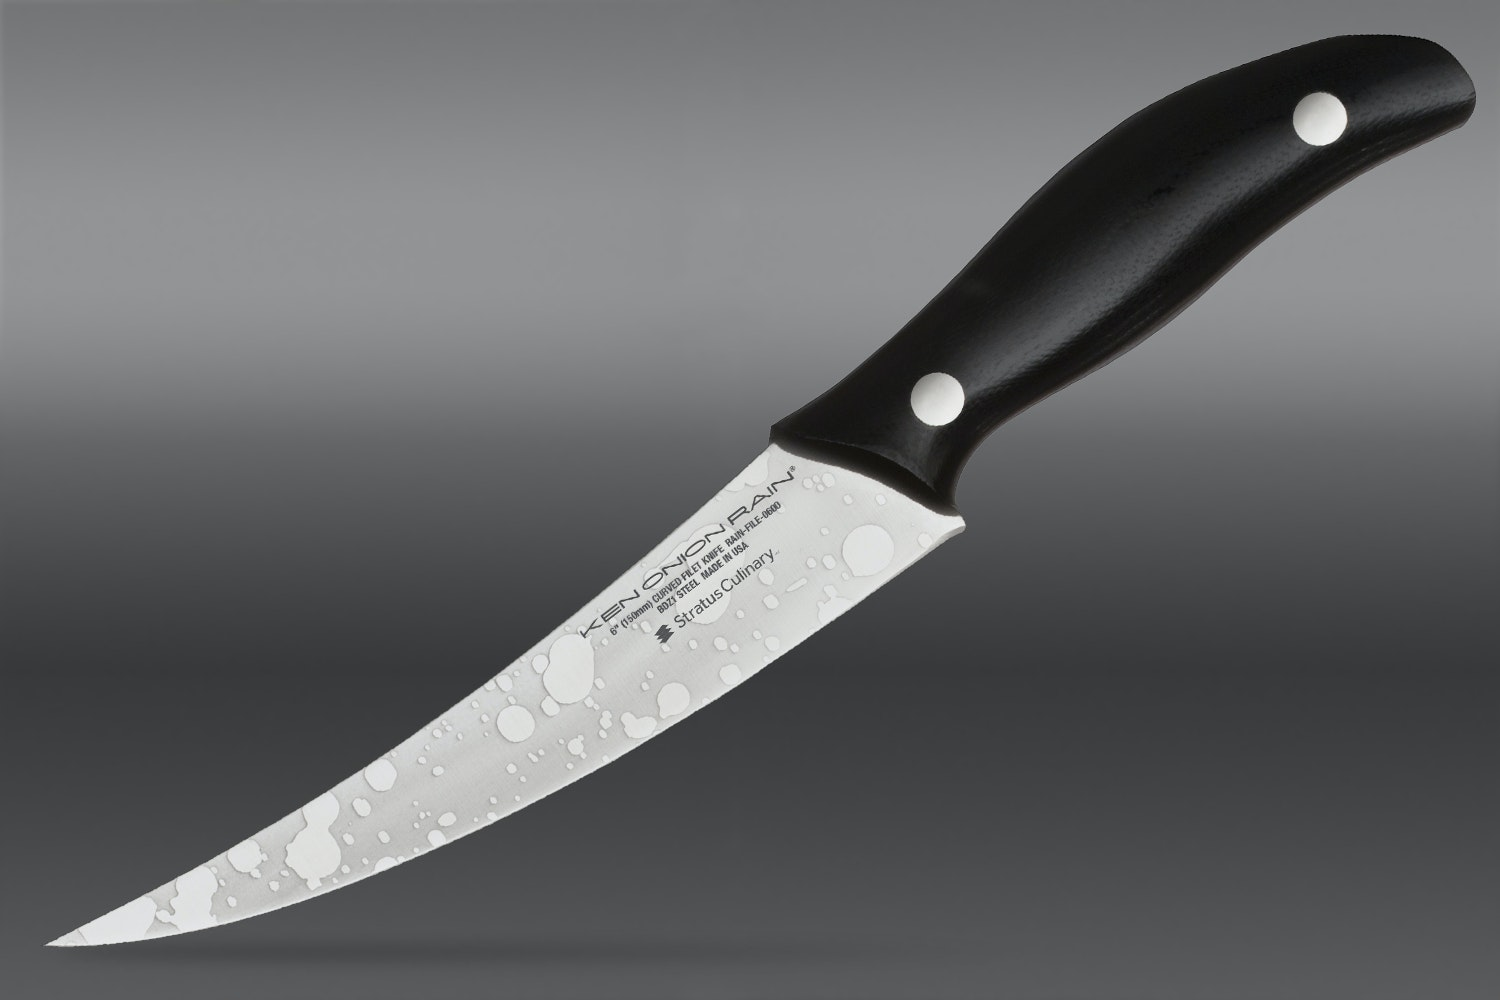 6-inch Curved Filet Knife (+ $15)